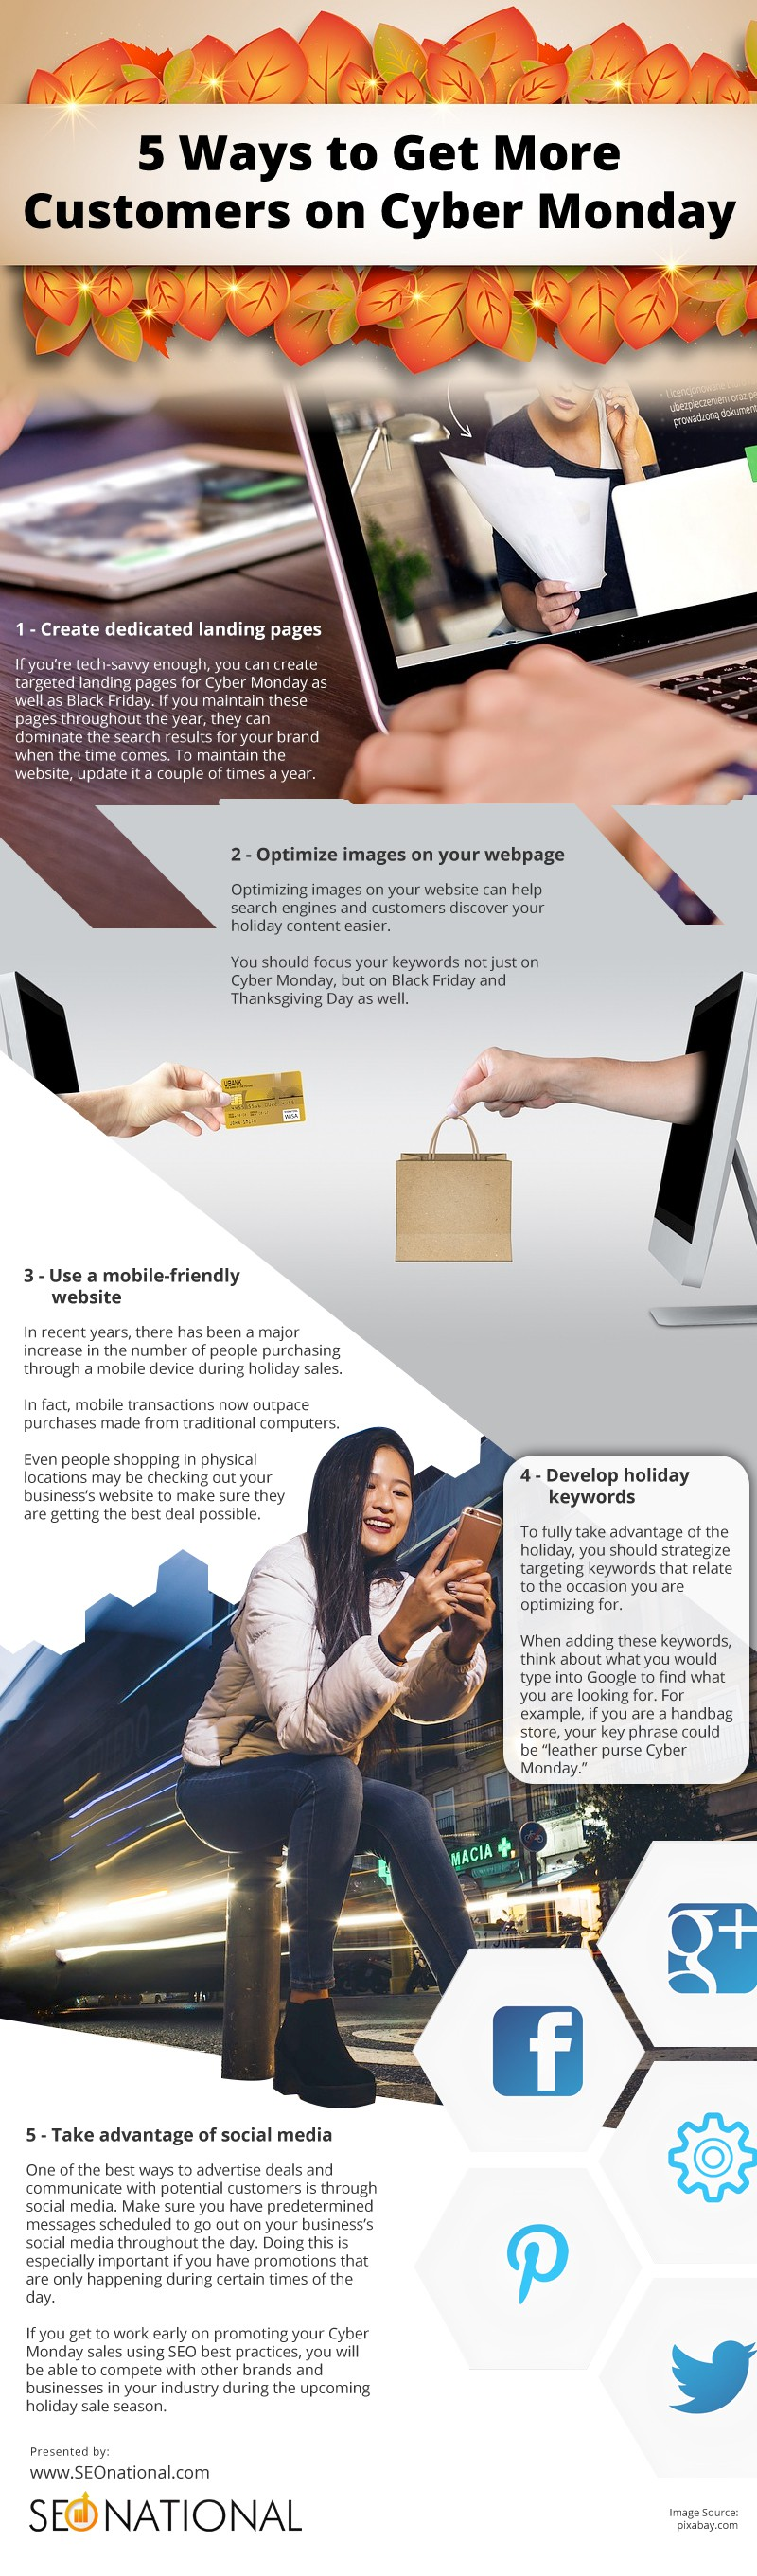 5 Ways to Get More Customers on Cyber Monday [infographic]